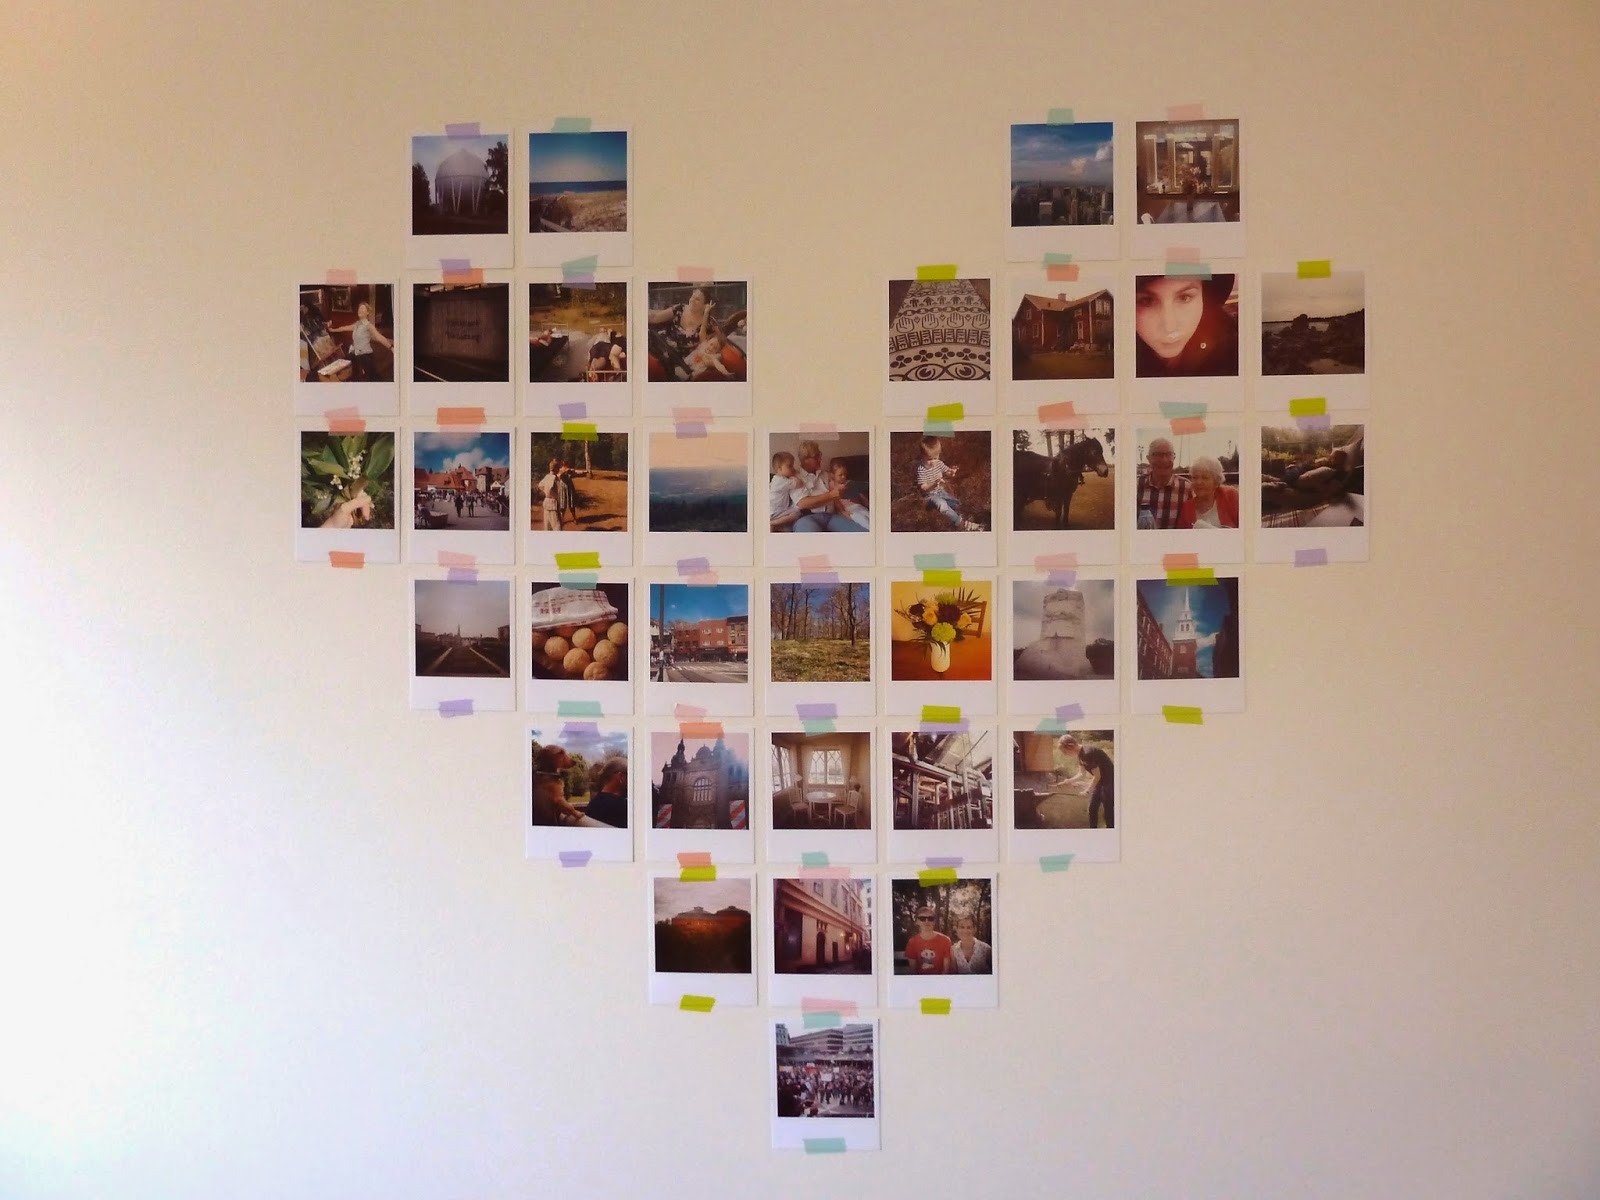 Nordic Craft Instagram Wall Collage